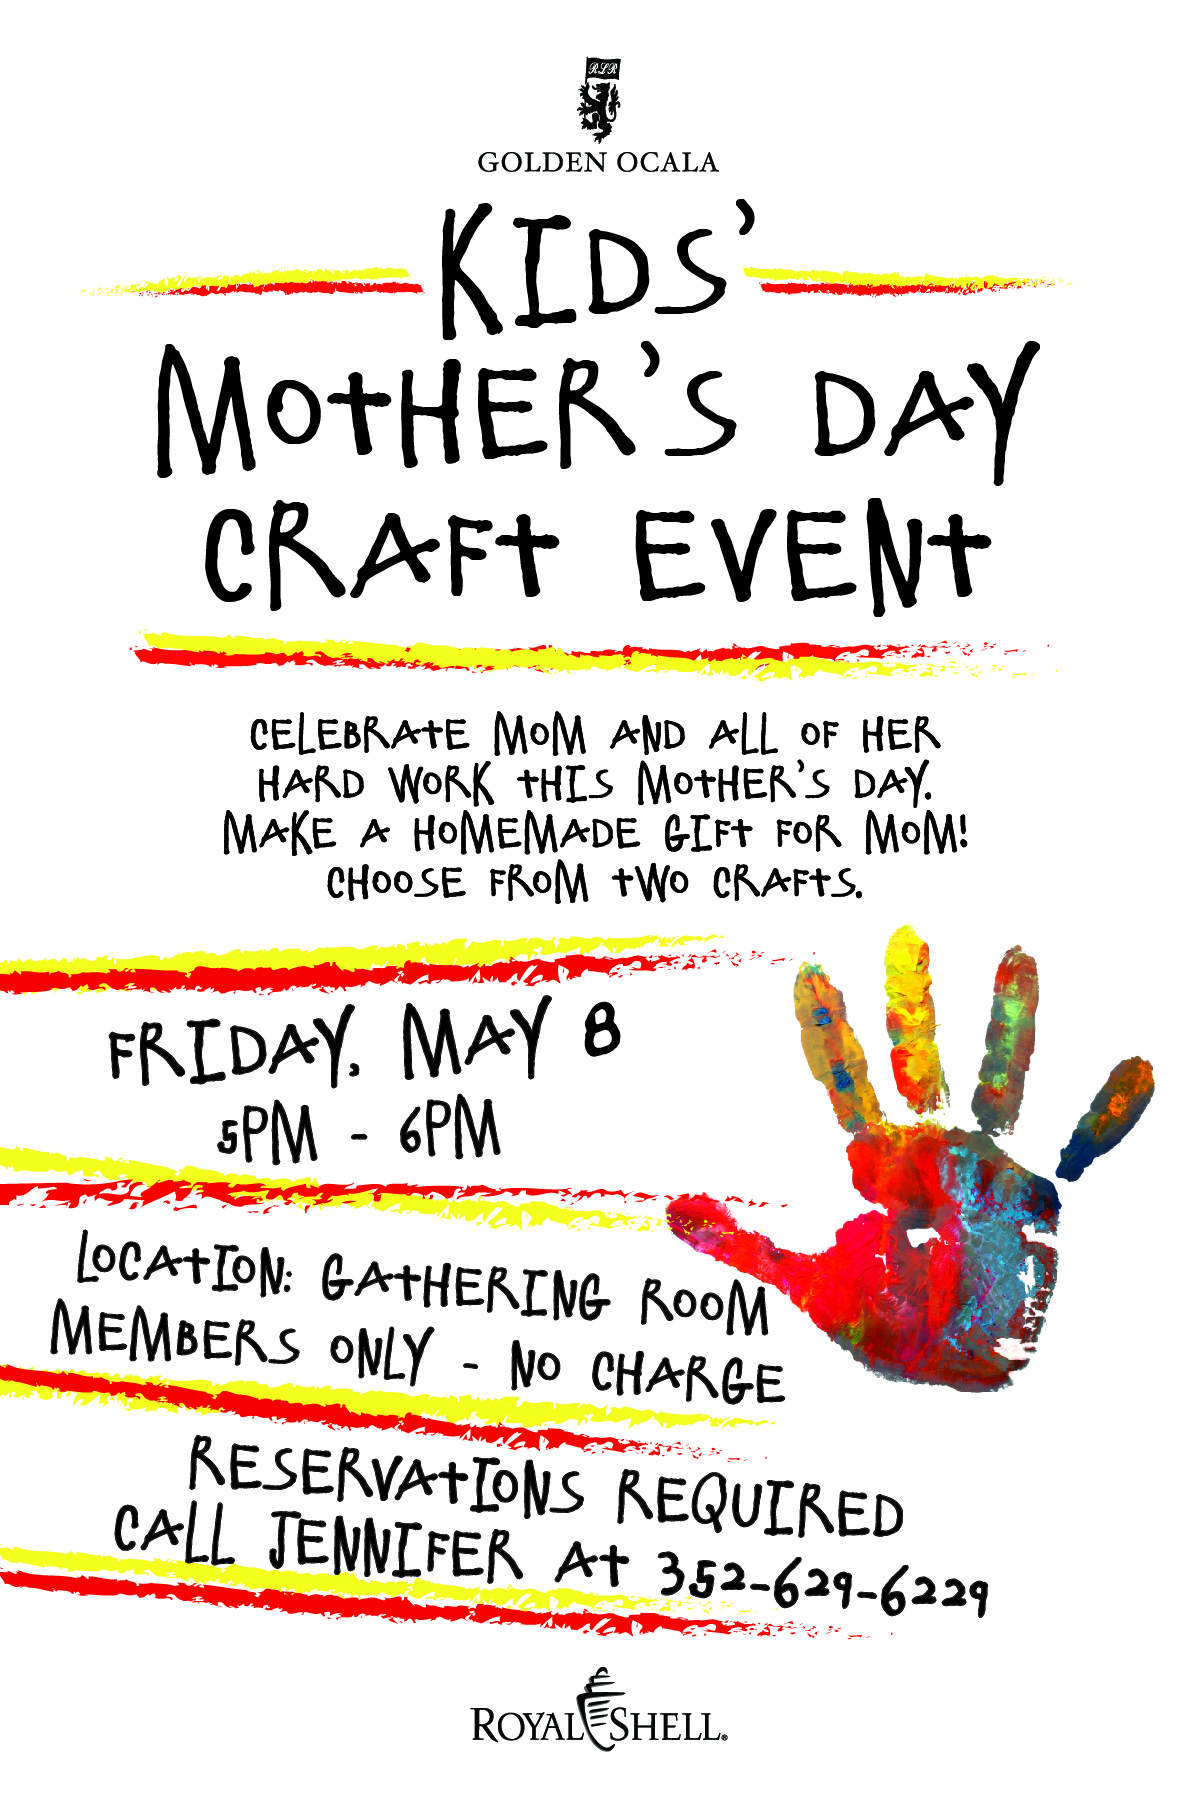 GO-FINAL Kids' Mother's Day Craft Event Version 1.4-01